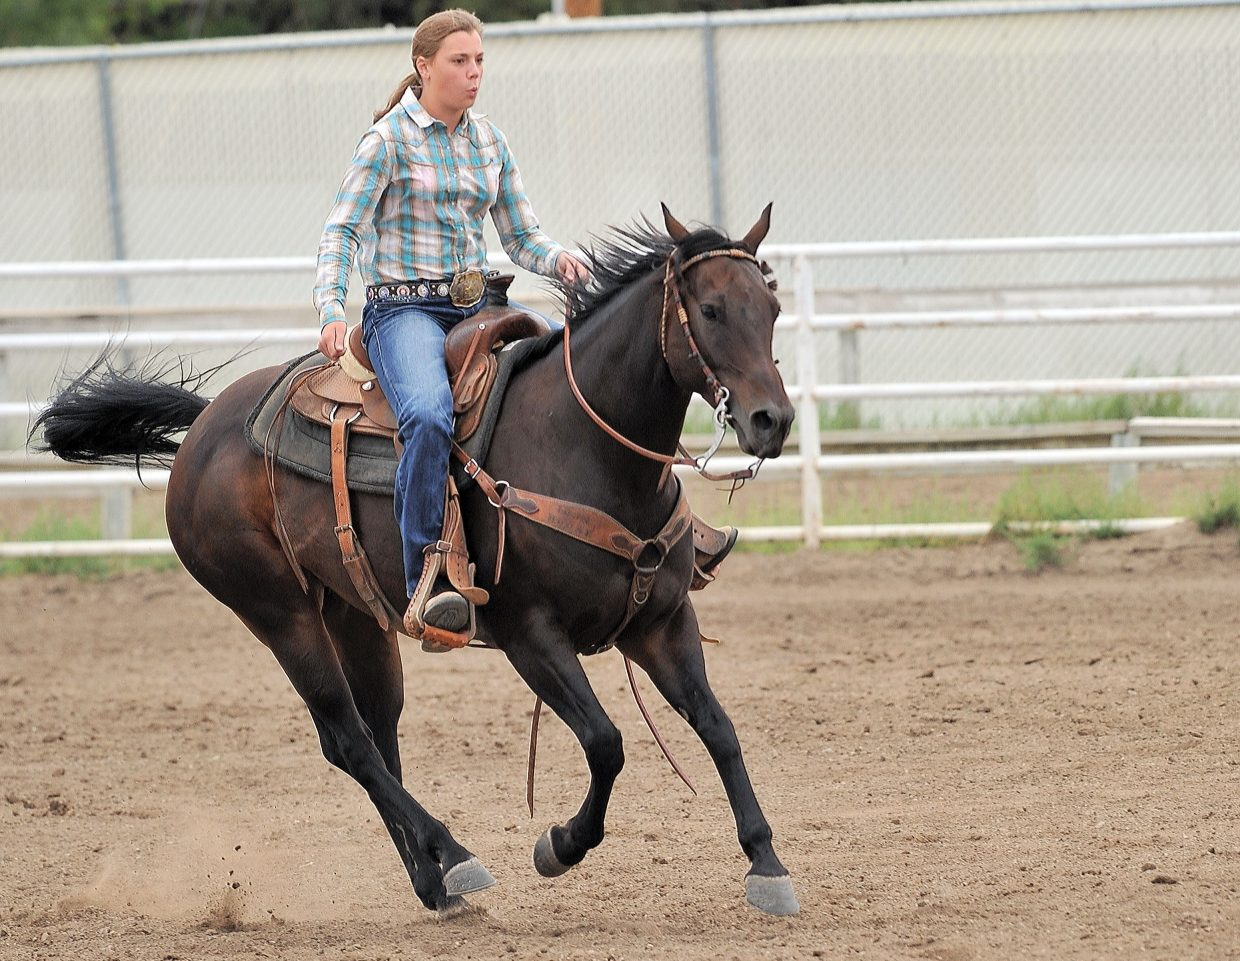 Taylor Elliott competes Monday morning inside the rodeo arena at the Routt County Fairgrounds during the ranch horse versatility competition. The event is one of several horse competitions at this year's Routt County Fair, which will shift into high gear later this week.